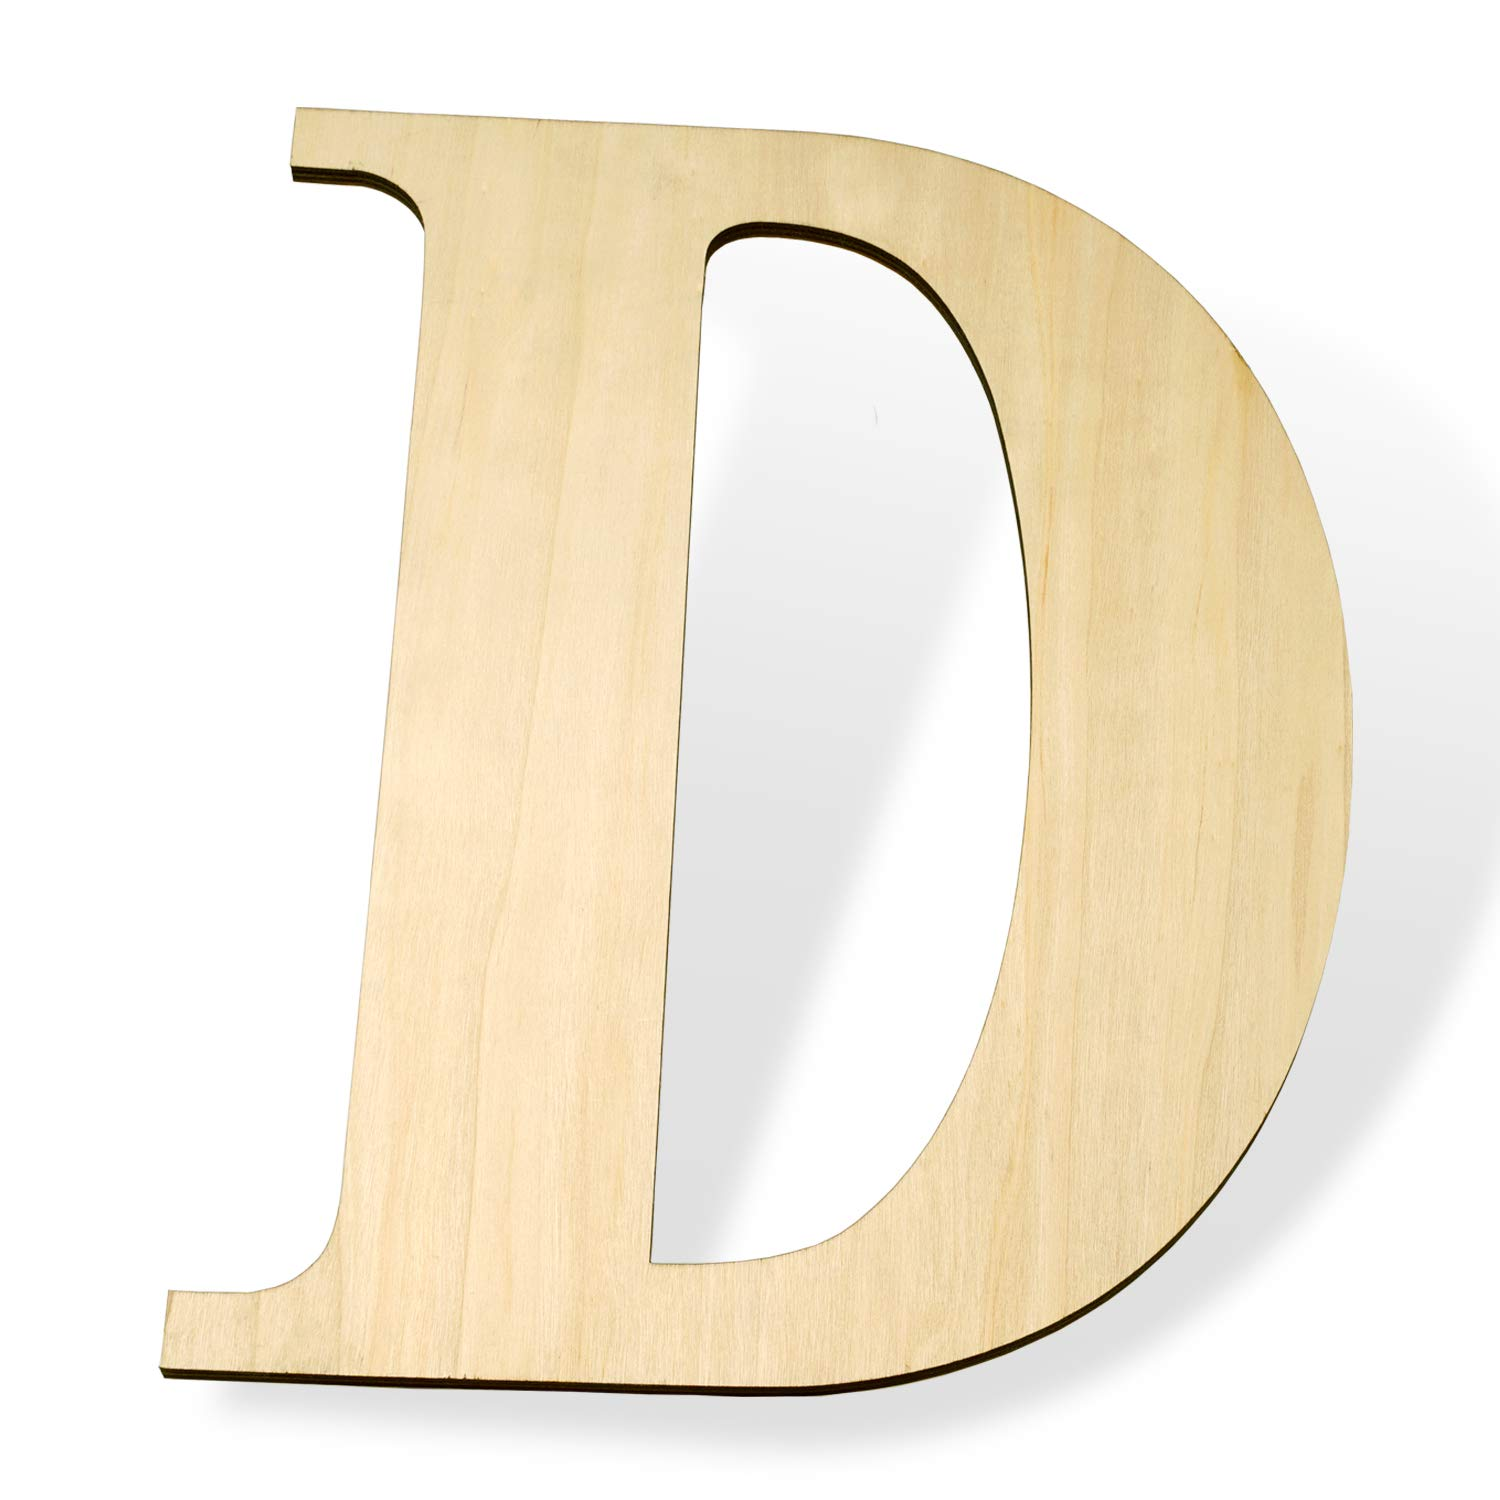 "12 inch Wooden Letters D - Blank Wood Board, Wood Letters for Walls Decor, Party, DIY Craft Projects (12"" - 1/4"" Thick, D)"